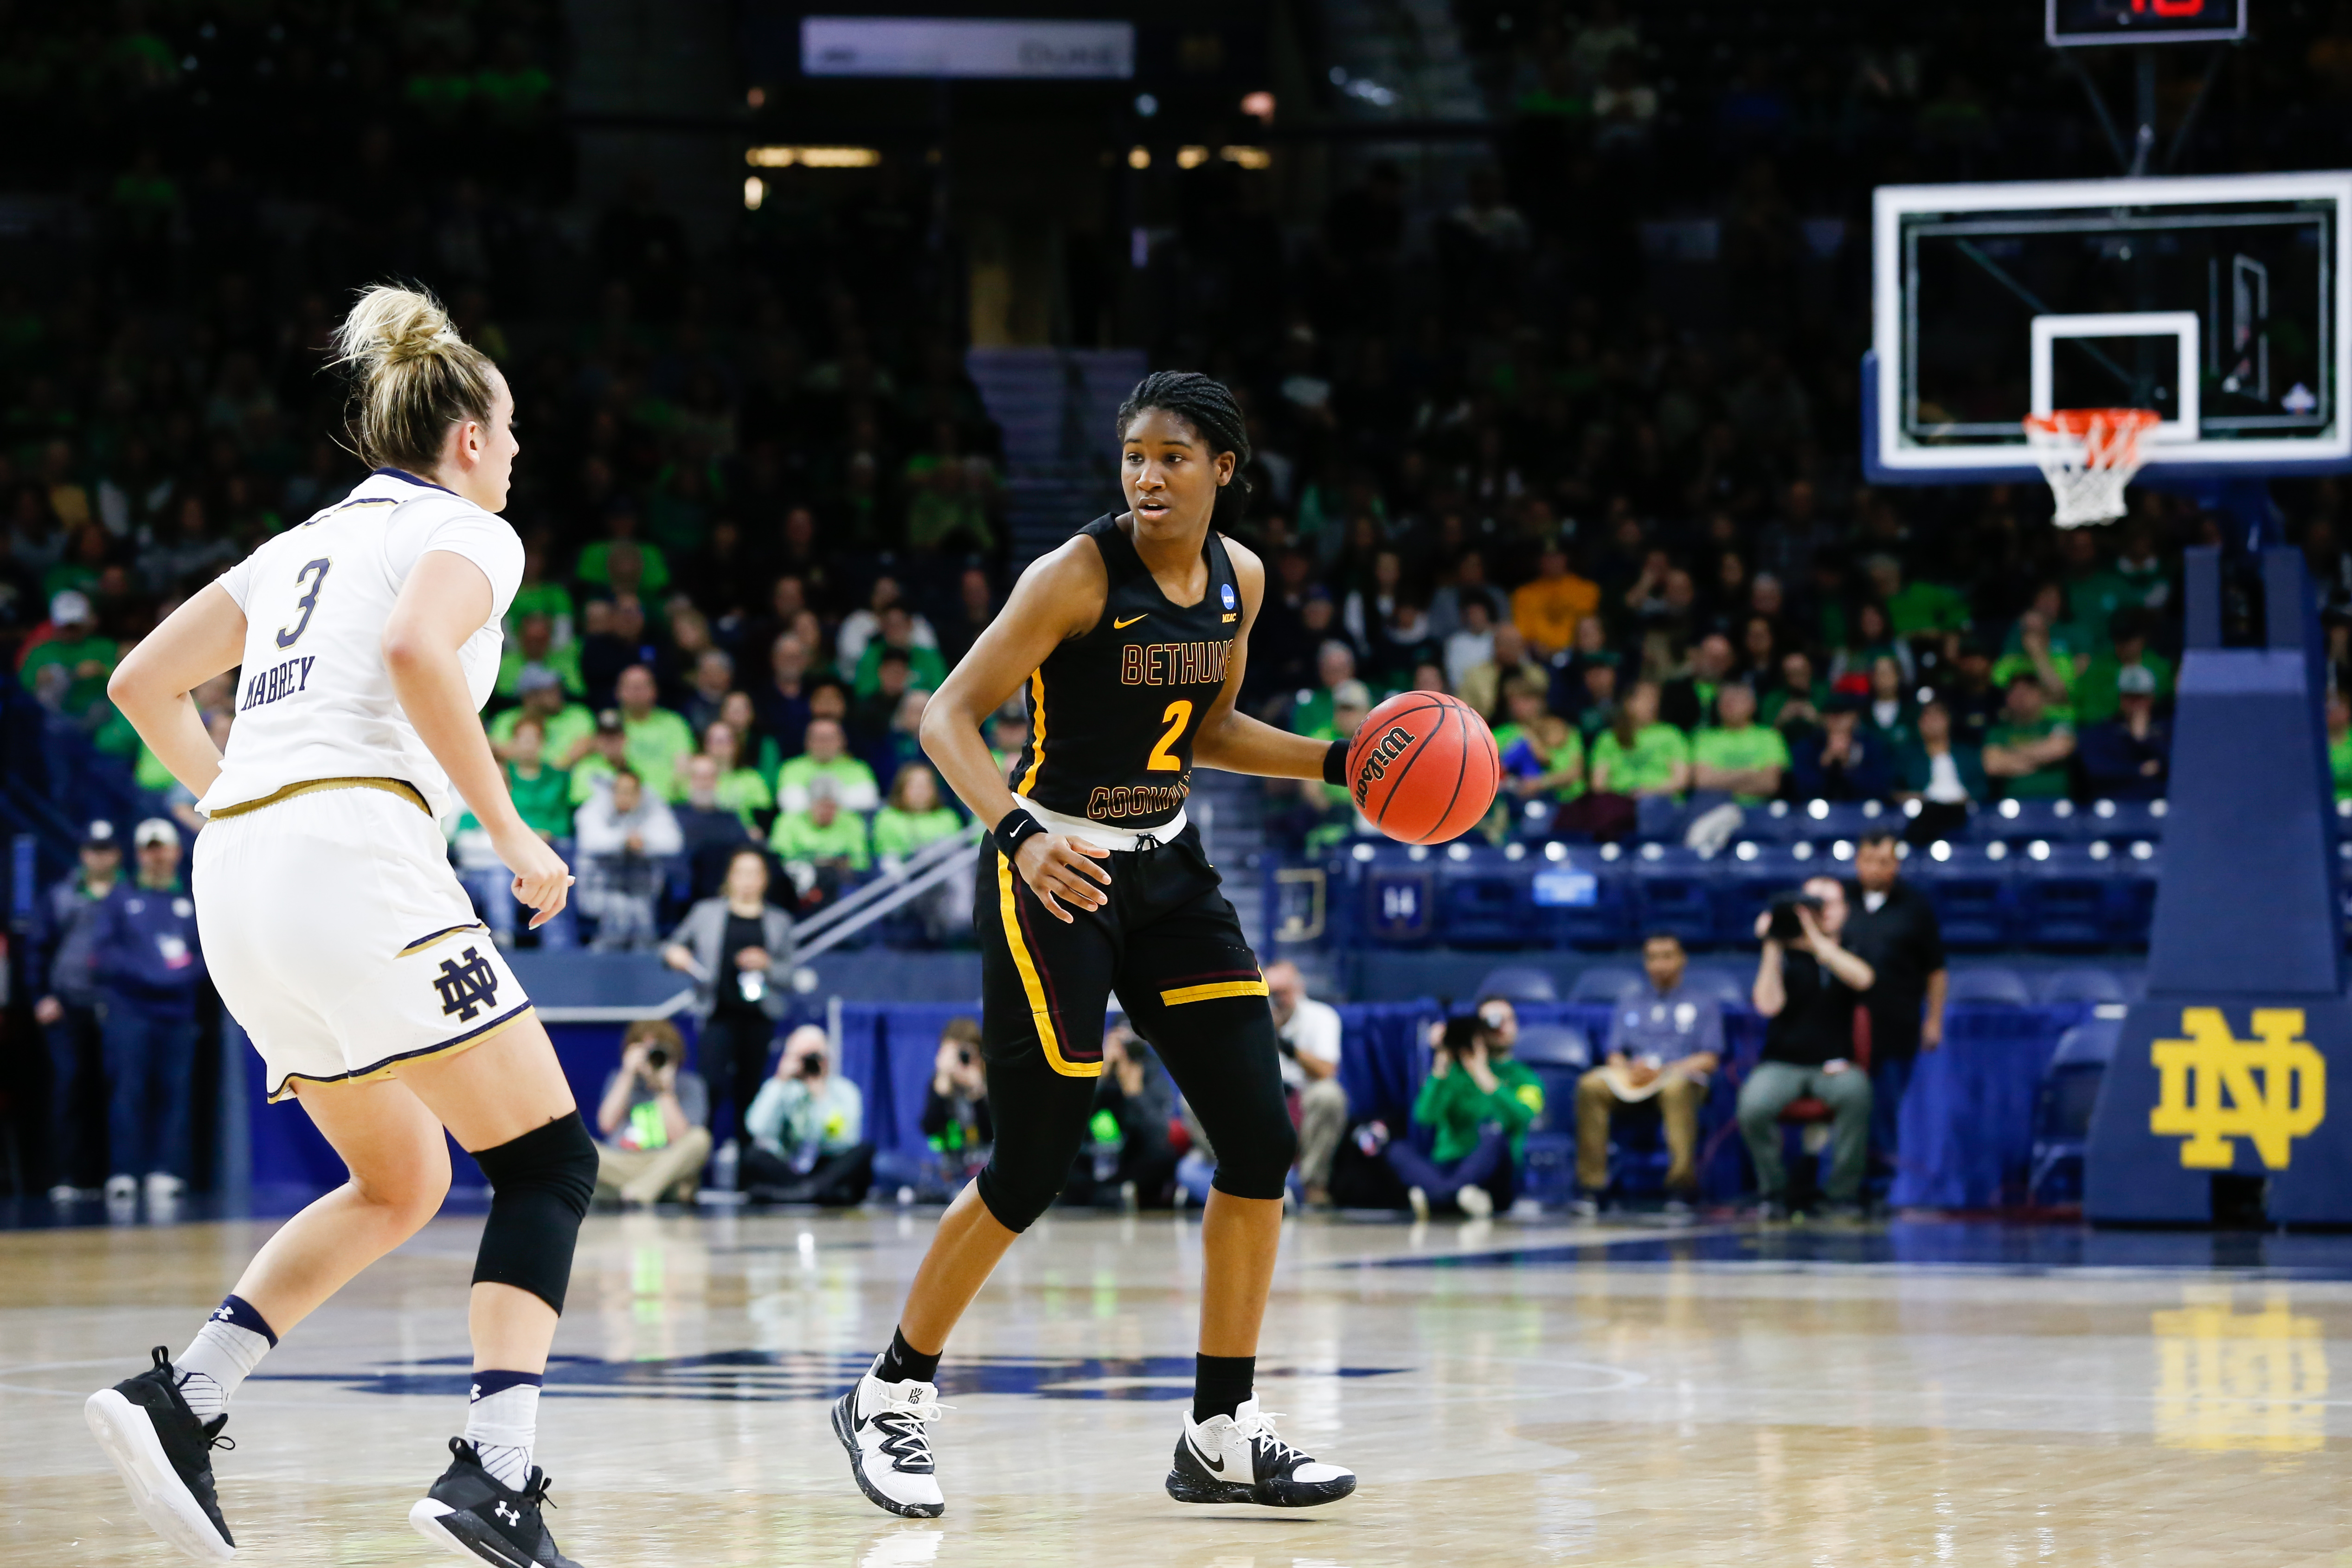 NCAA BASKETBALL: MAR 23 Div I Women's Championship - First Round - Bethune-Cookman v Notre Dame